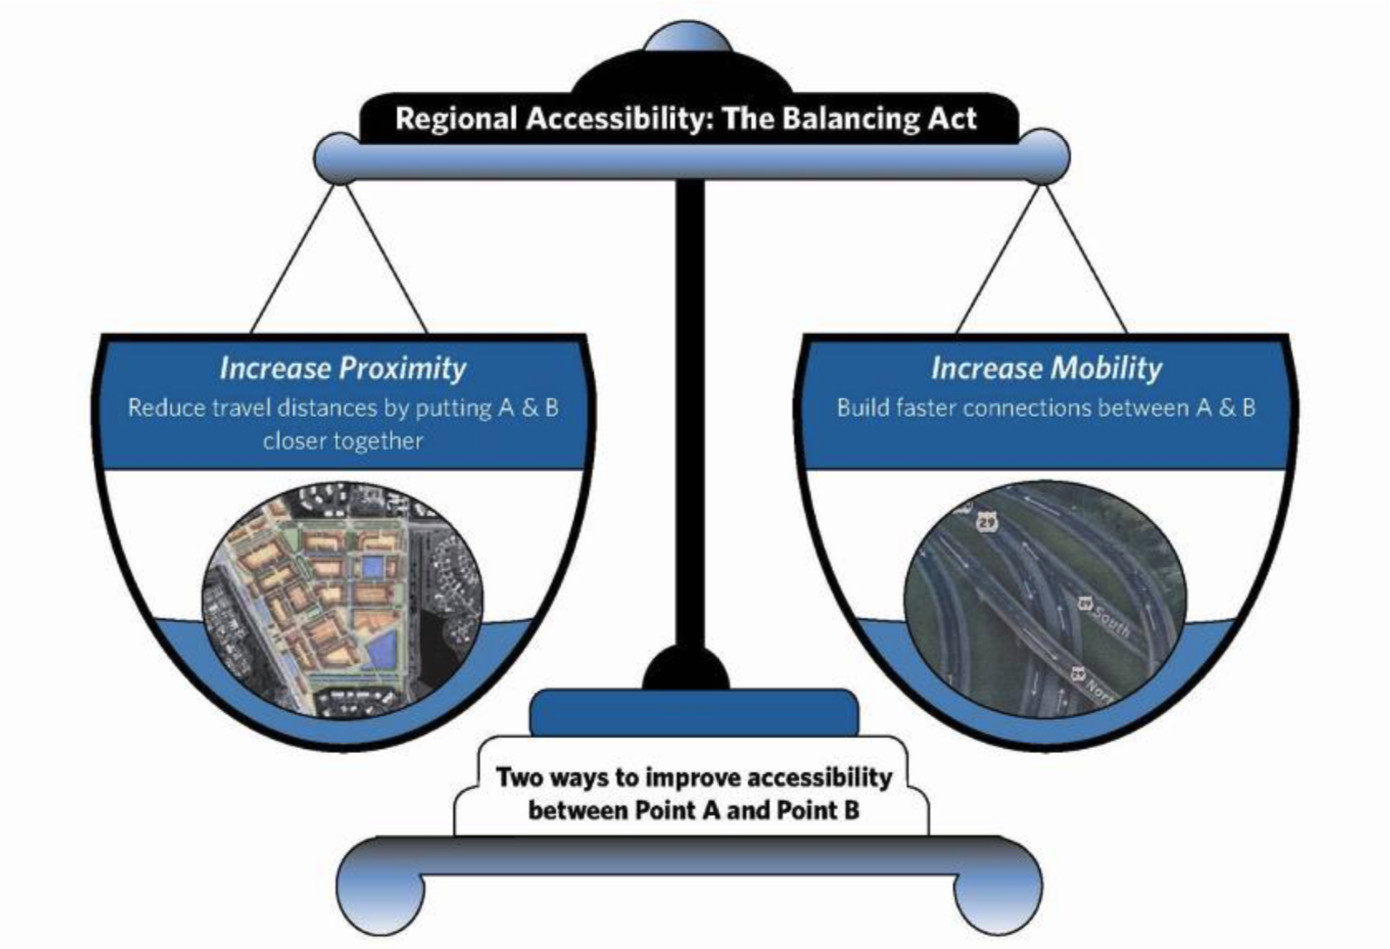 Regional Accessibility - The Balancing Act.png